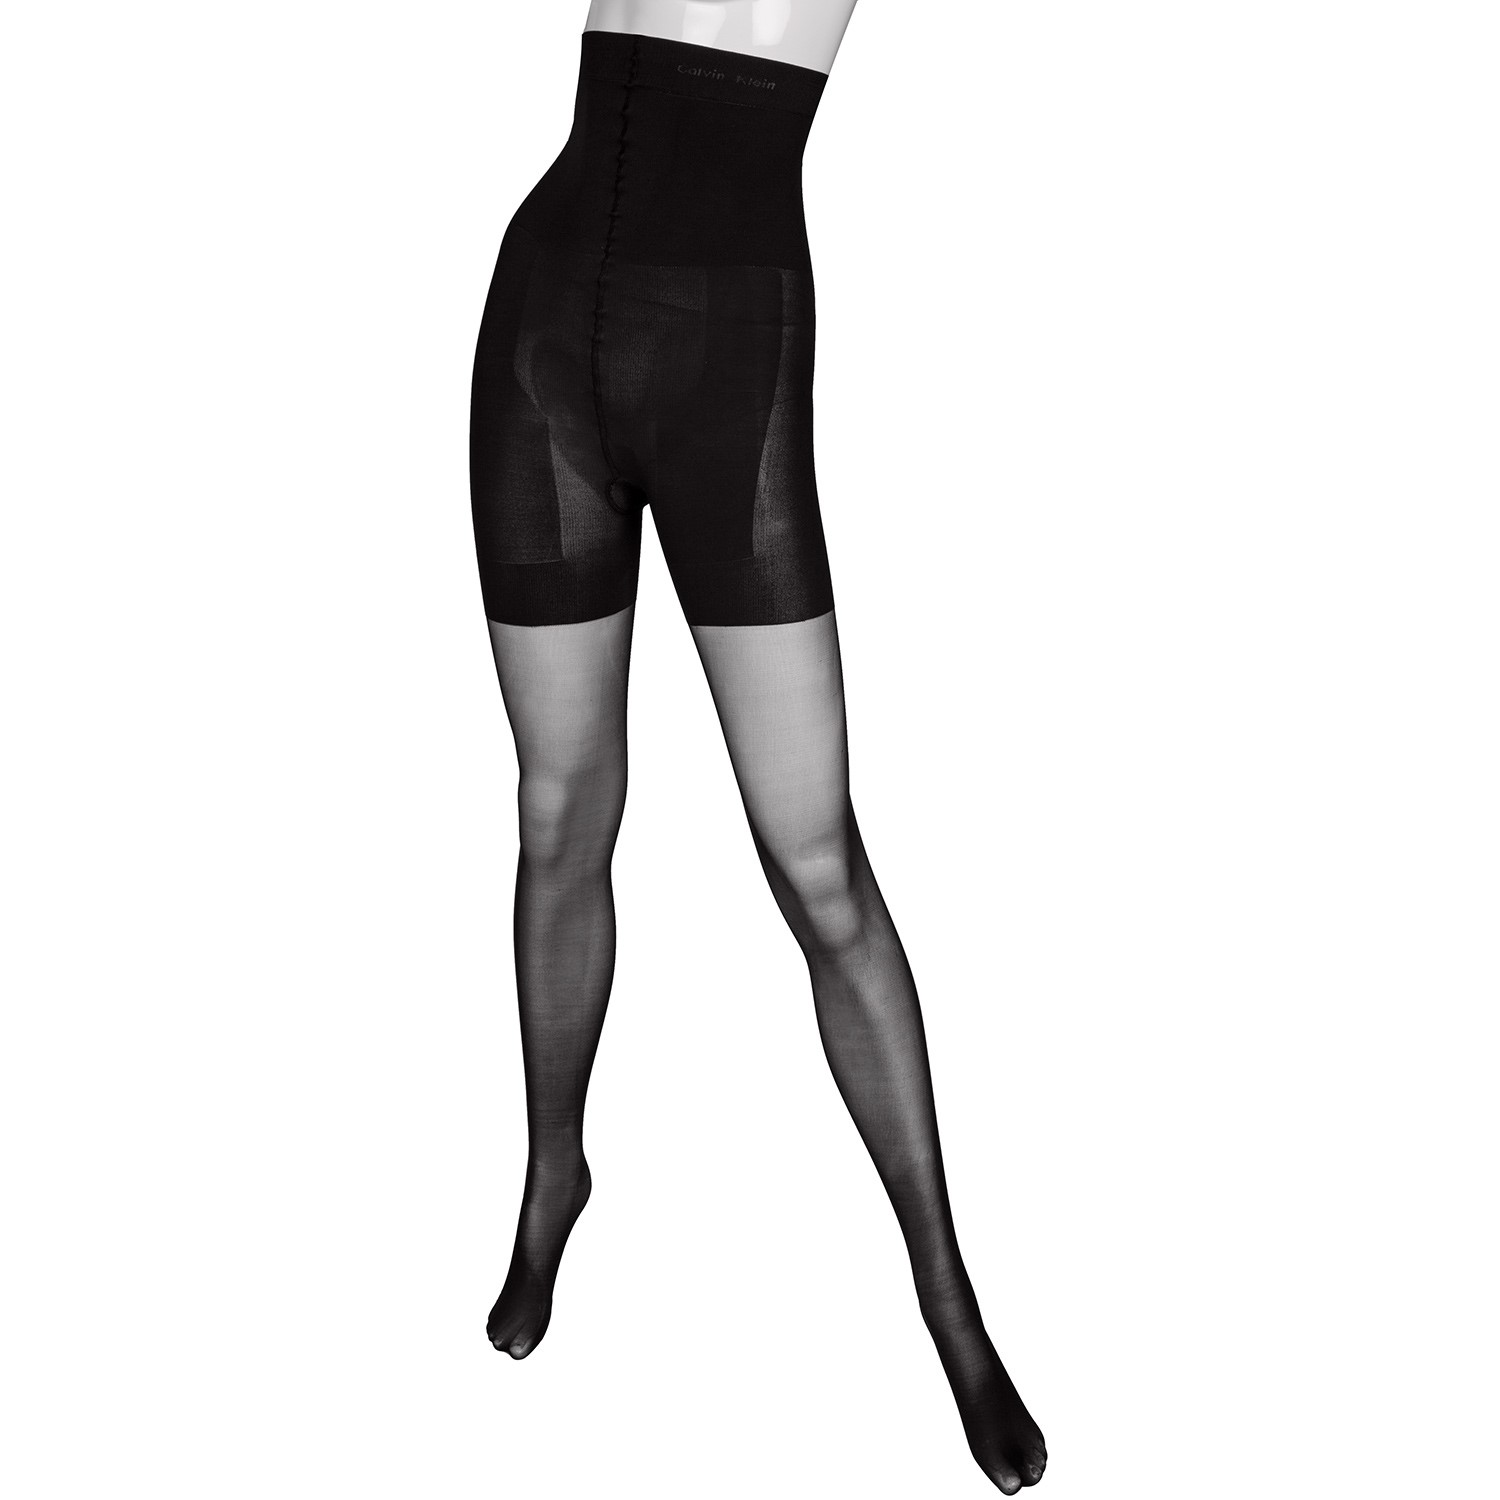 692c26ee7 Calvin Klein Ultra Fit High Waist Shaper Tights 40 - Tights - Socks -  Timarco.eu